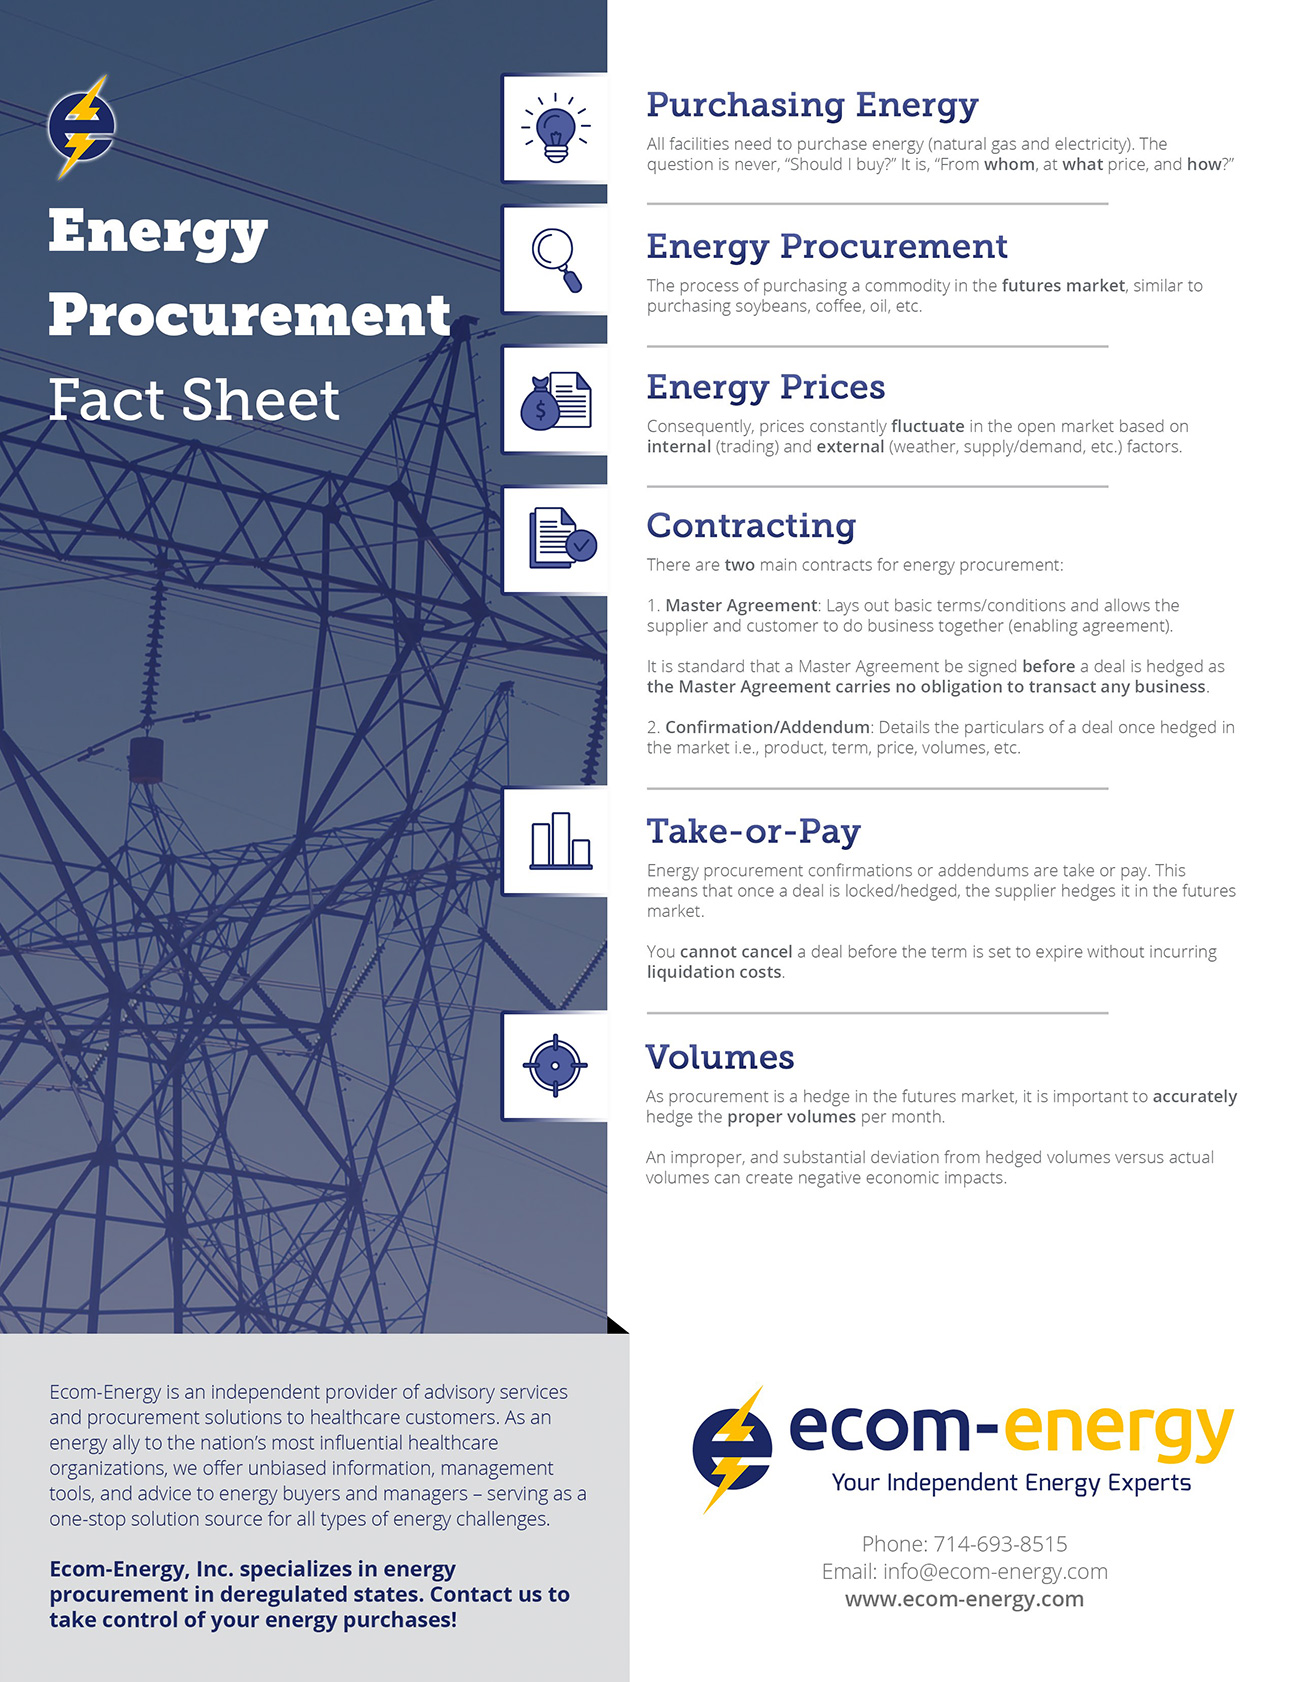 Ecom-Energy's Energy Procurement Fact Sheet